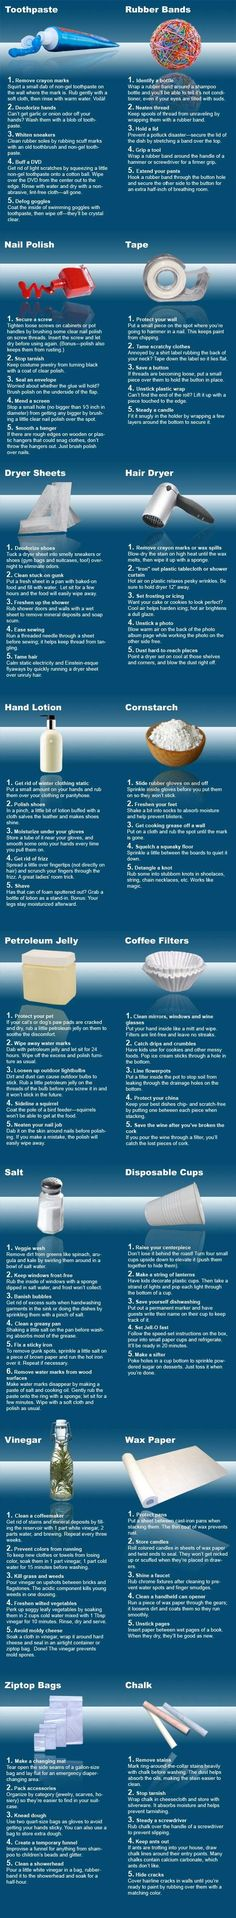 Great list of 2nd uses for household objects!